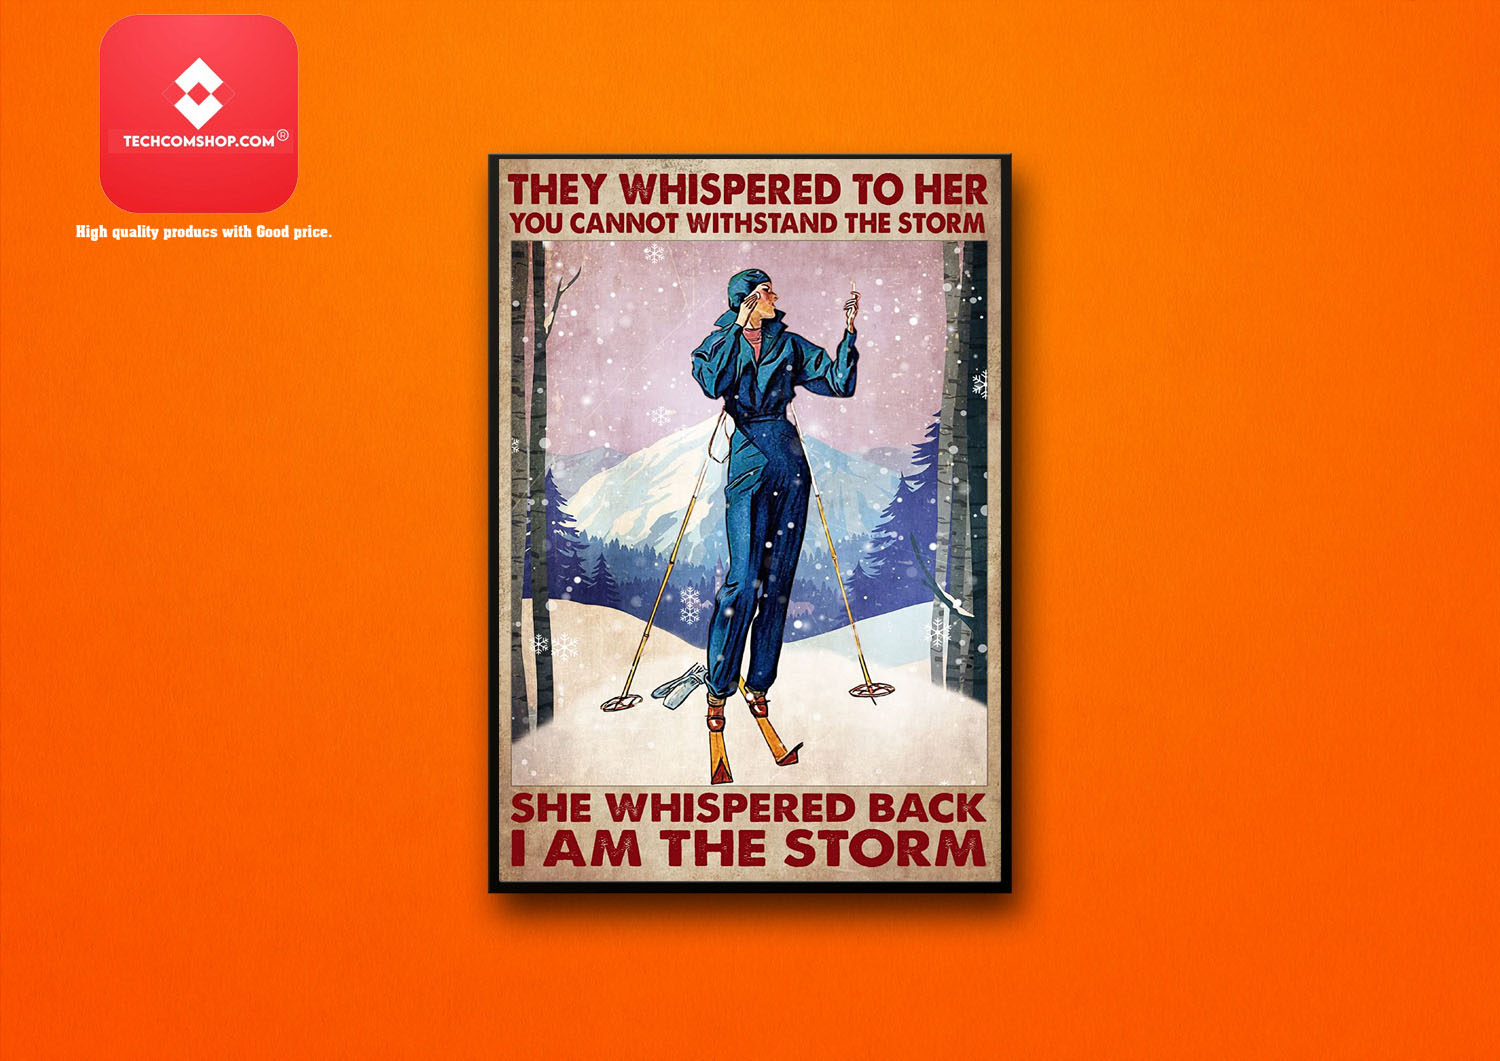 Skiing They whispered to her you cannot withstand the strorm she whipered back I am the storm poster 8